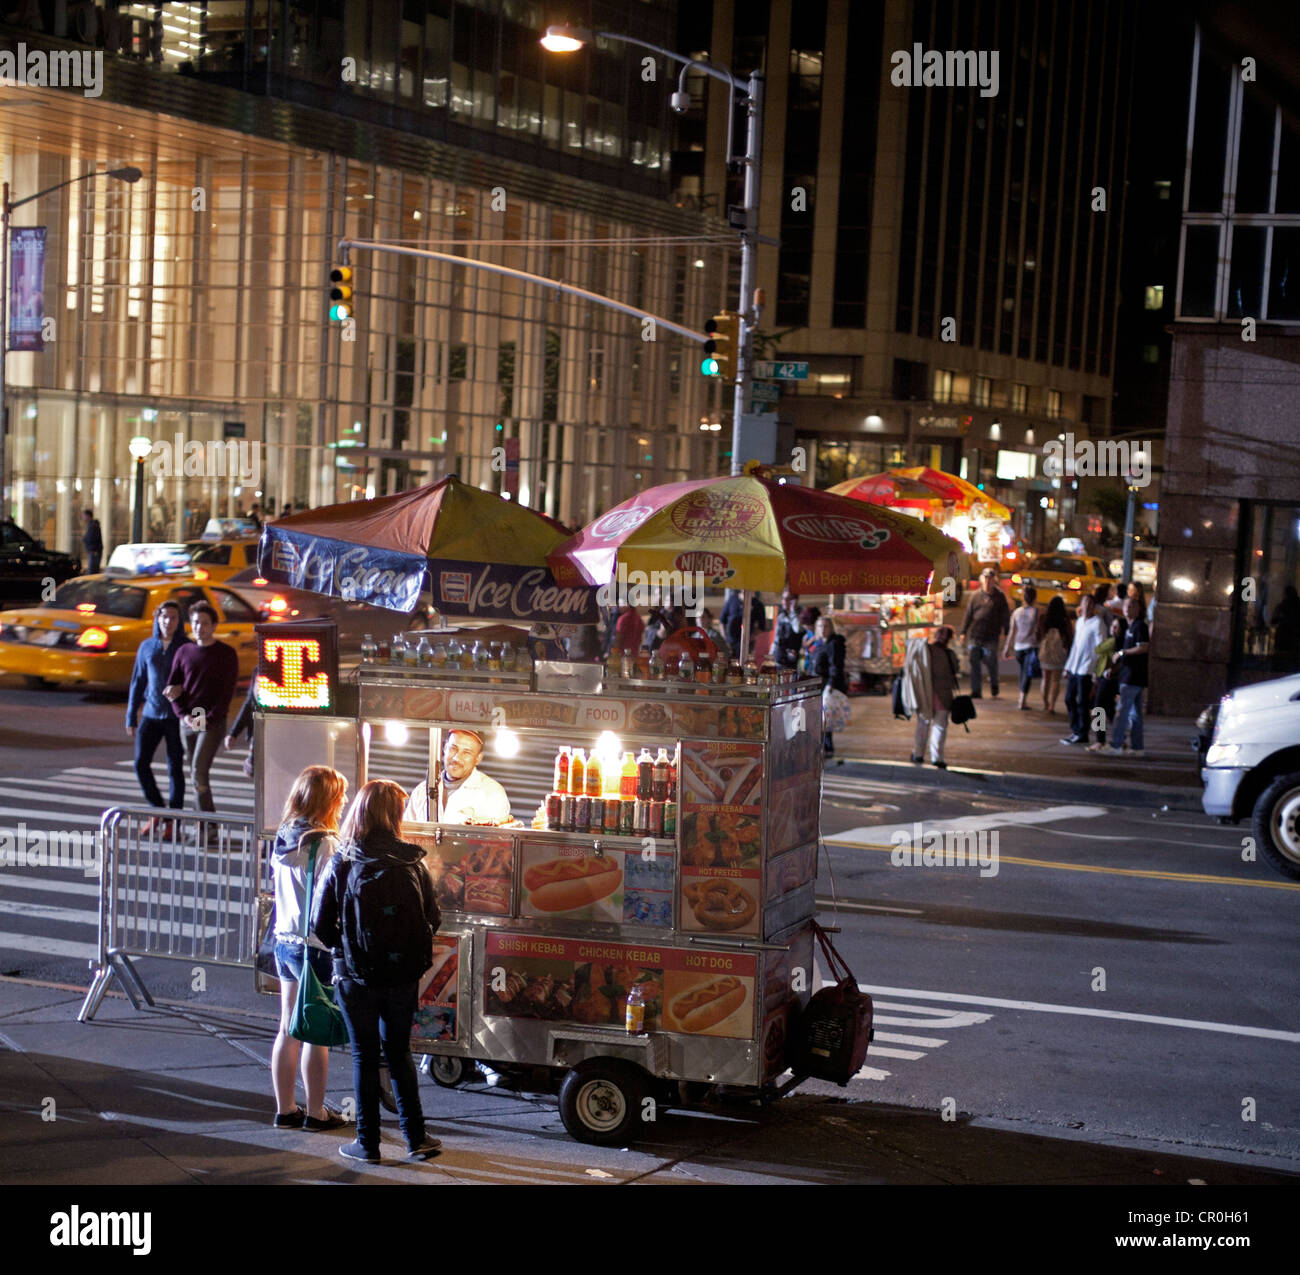 A food truck is open late at night in New York City Stock ...